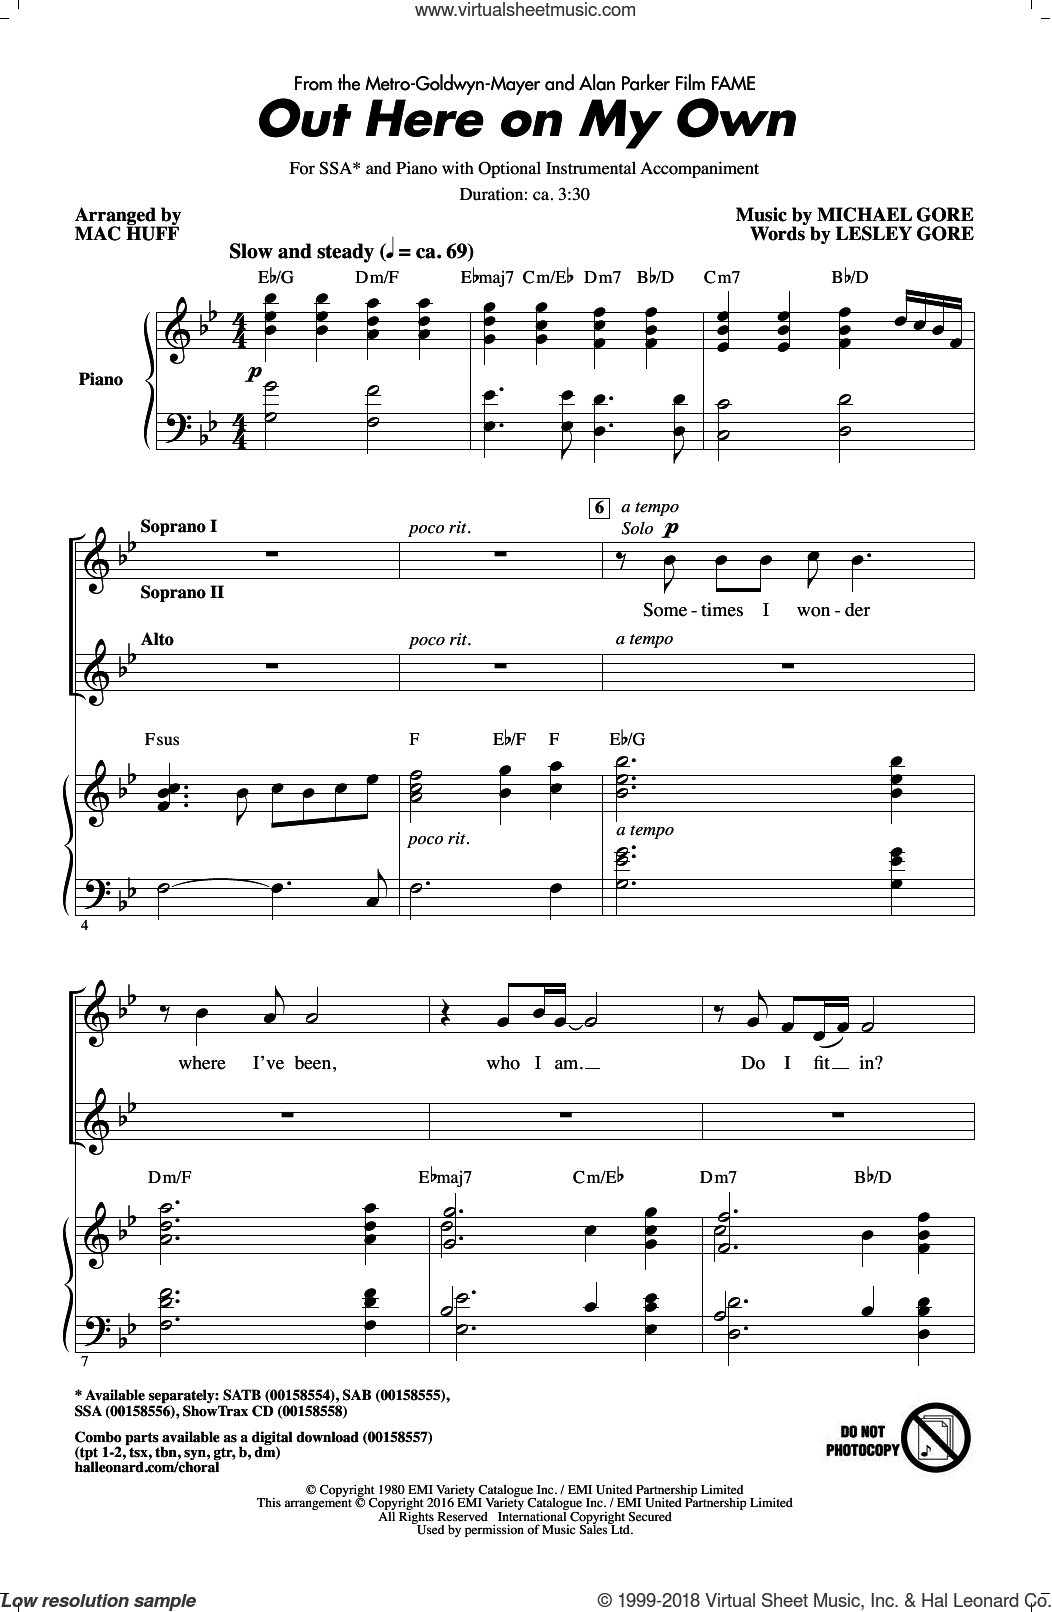 Out Here On My Own sheet music for choir and piano (SSA) by Michael Gore, Mac Huff and Lesley Gore. Score Image Preview.